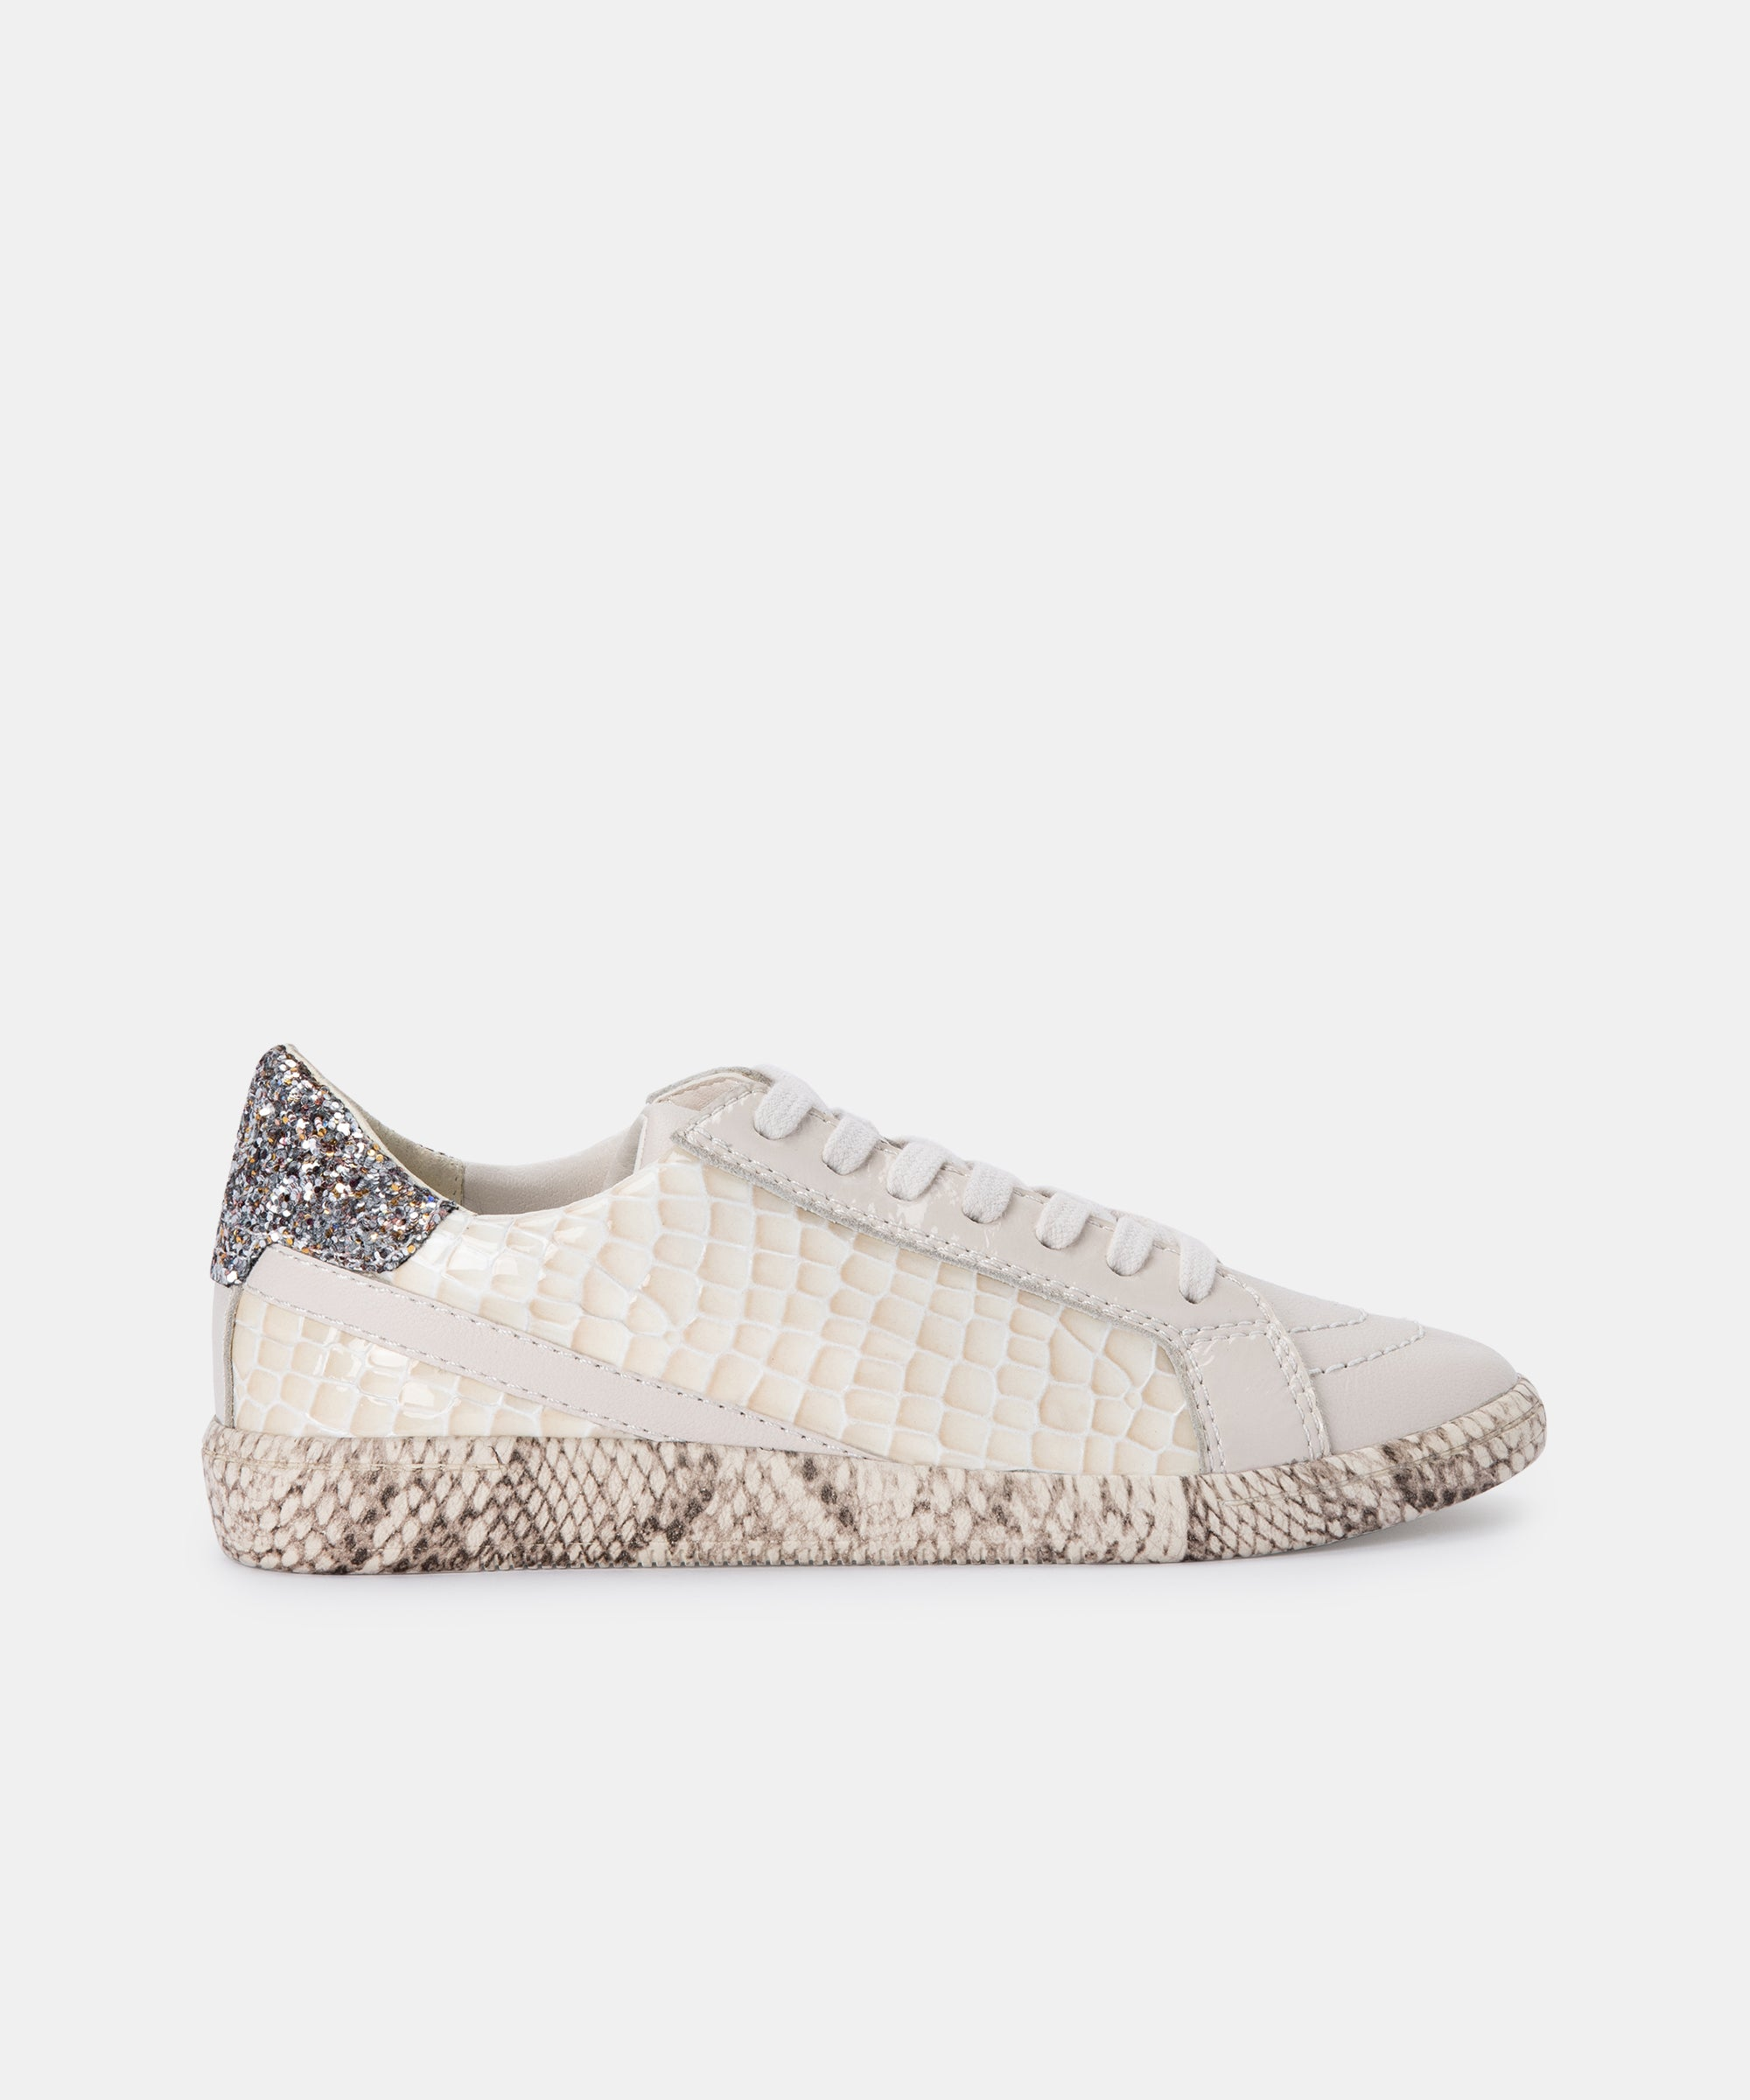 NINO SNEAKERS IN EGGSHELL PATENT CROCO LEATHER